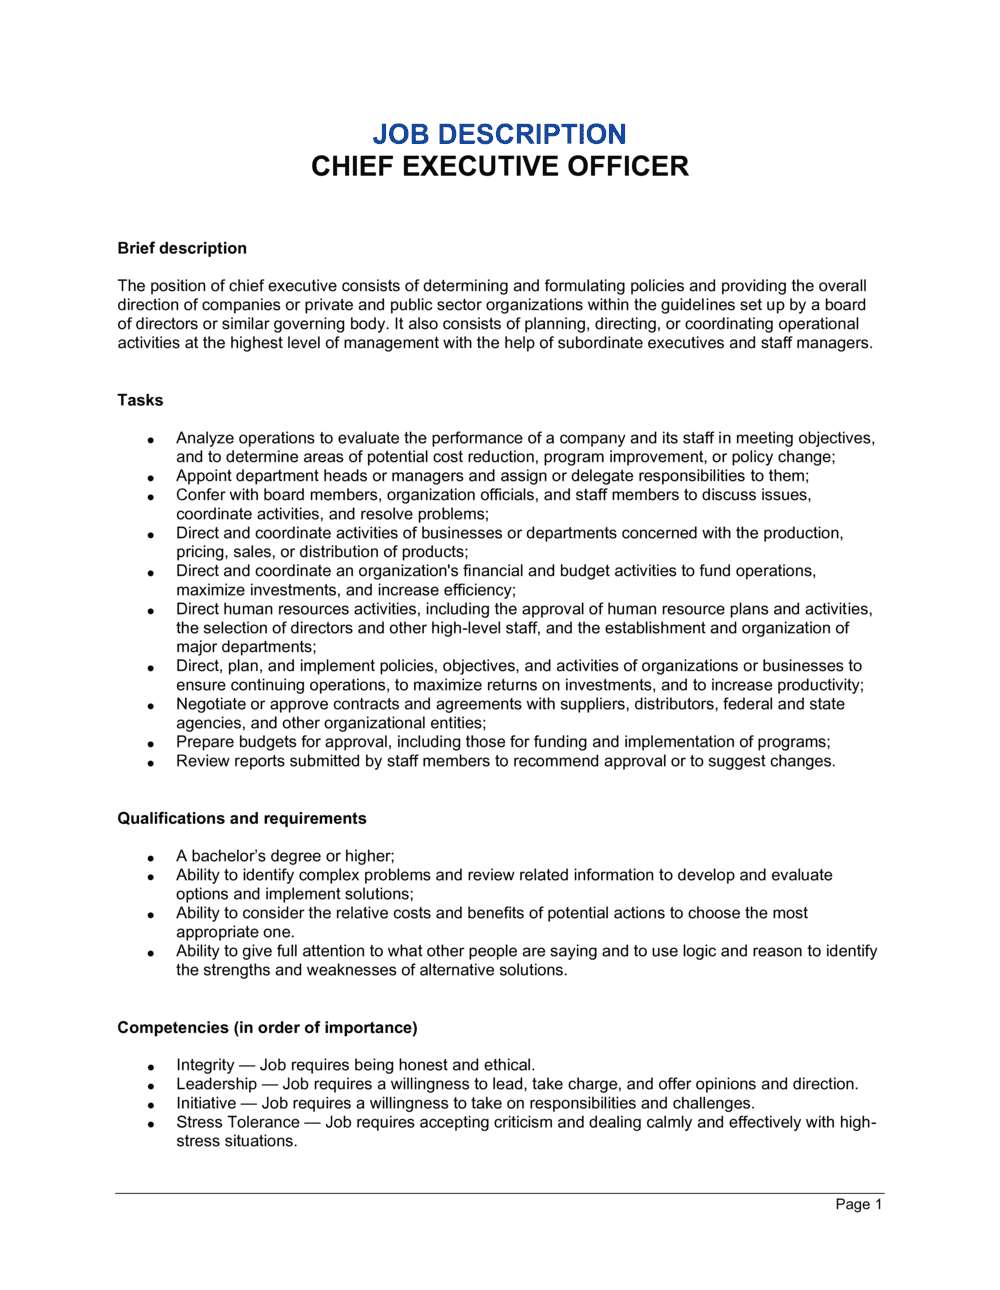 Business-in-a-Box's Chief Executive Job Description Template